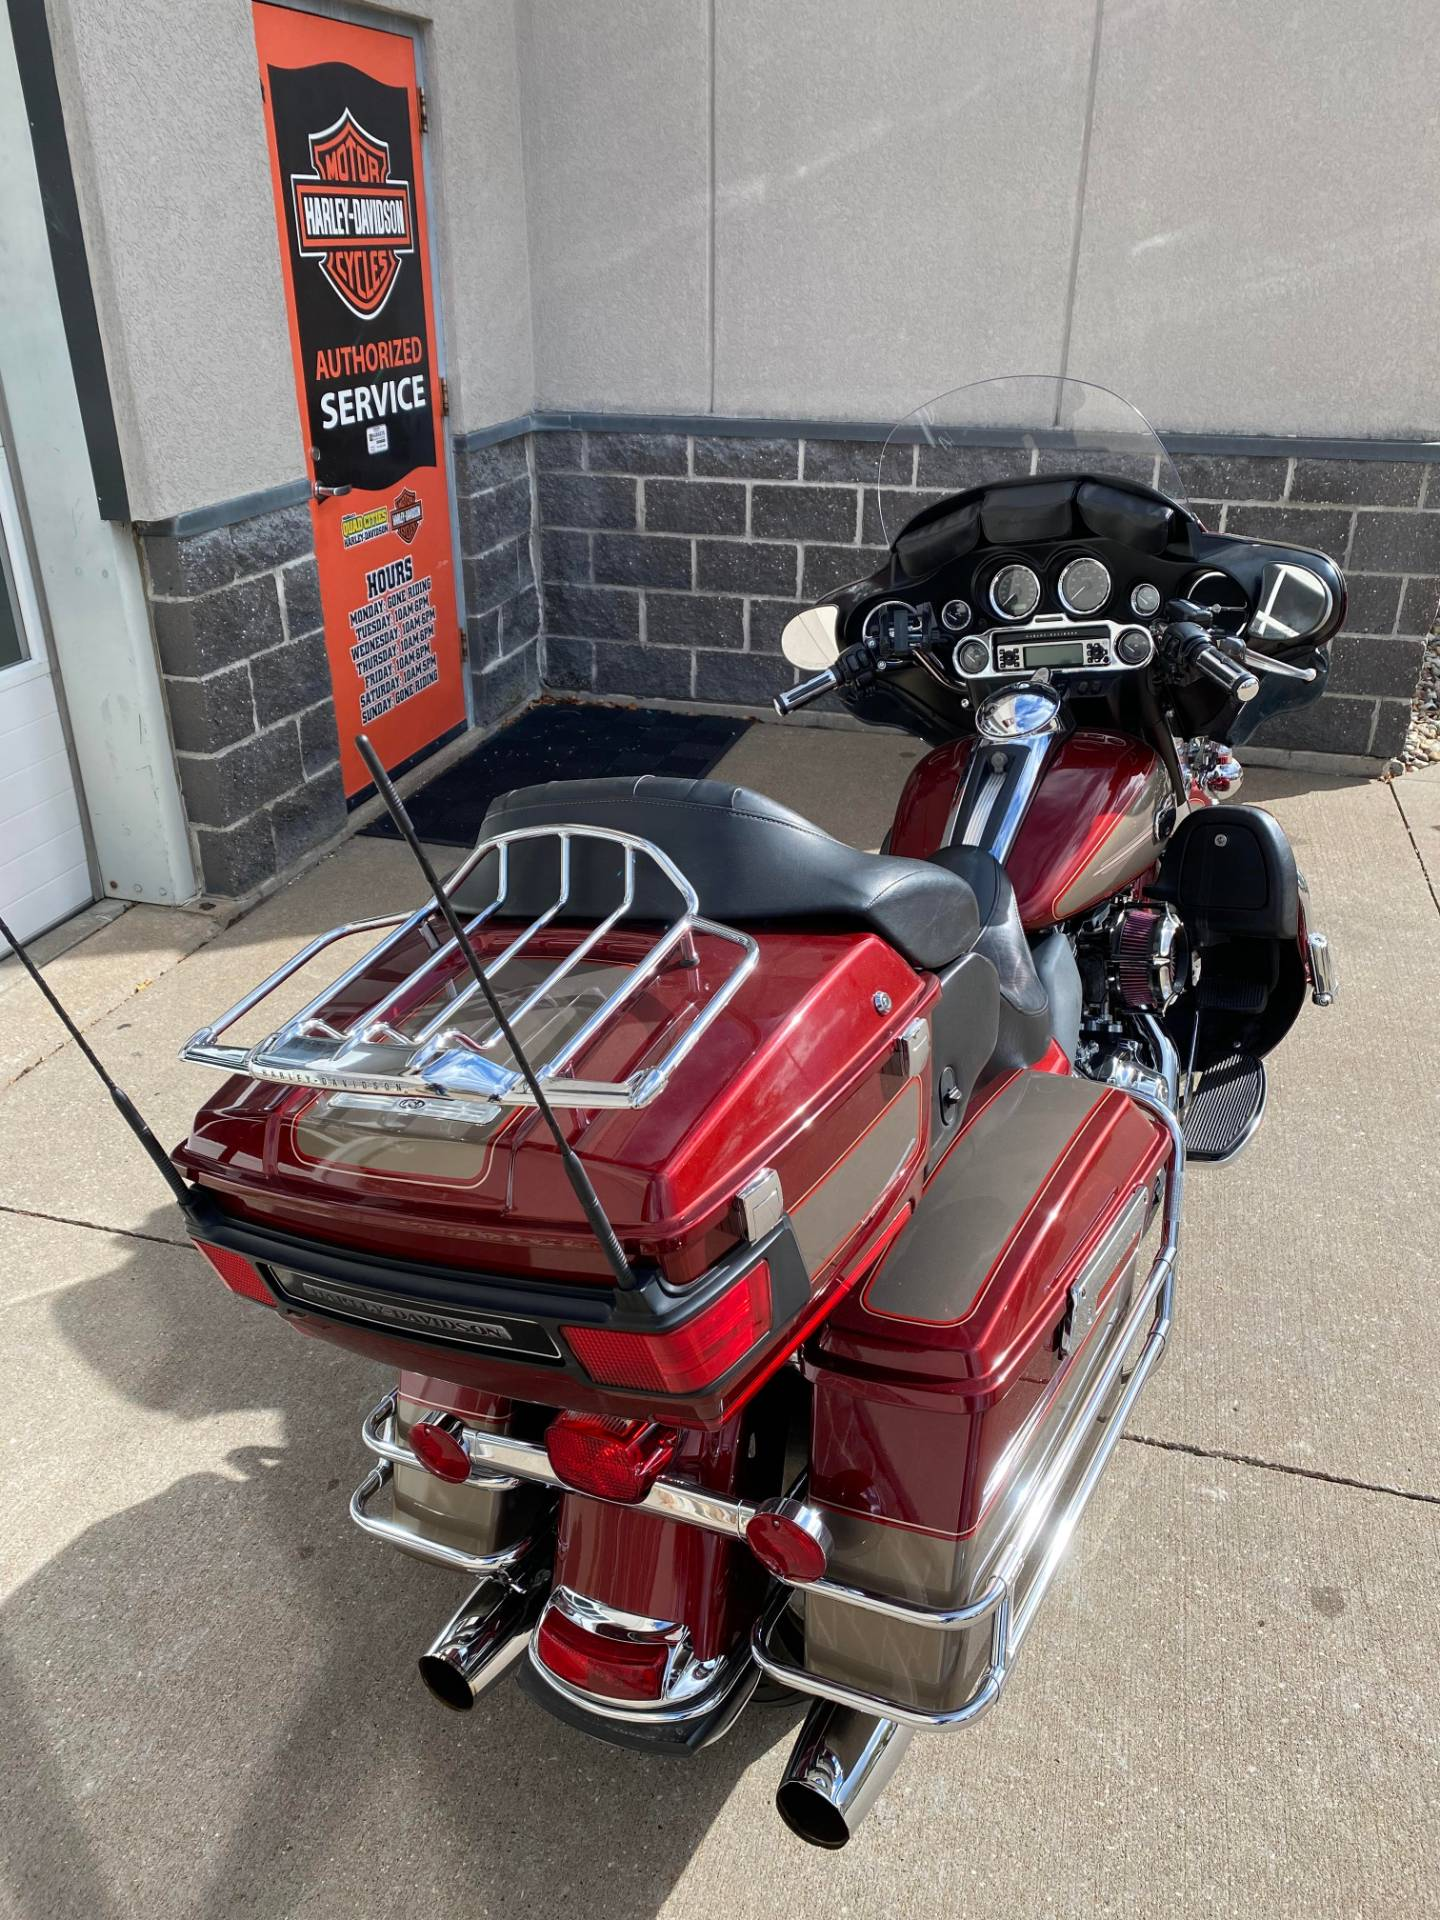 2009 Harley-Davidson ELECTRA GLIDE ULTRA CLASSIC in Davenport, Iowa - Photo 3